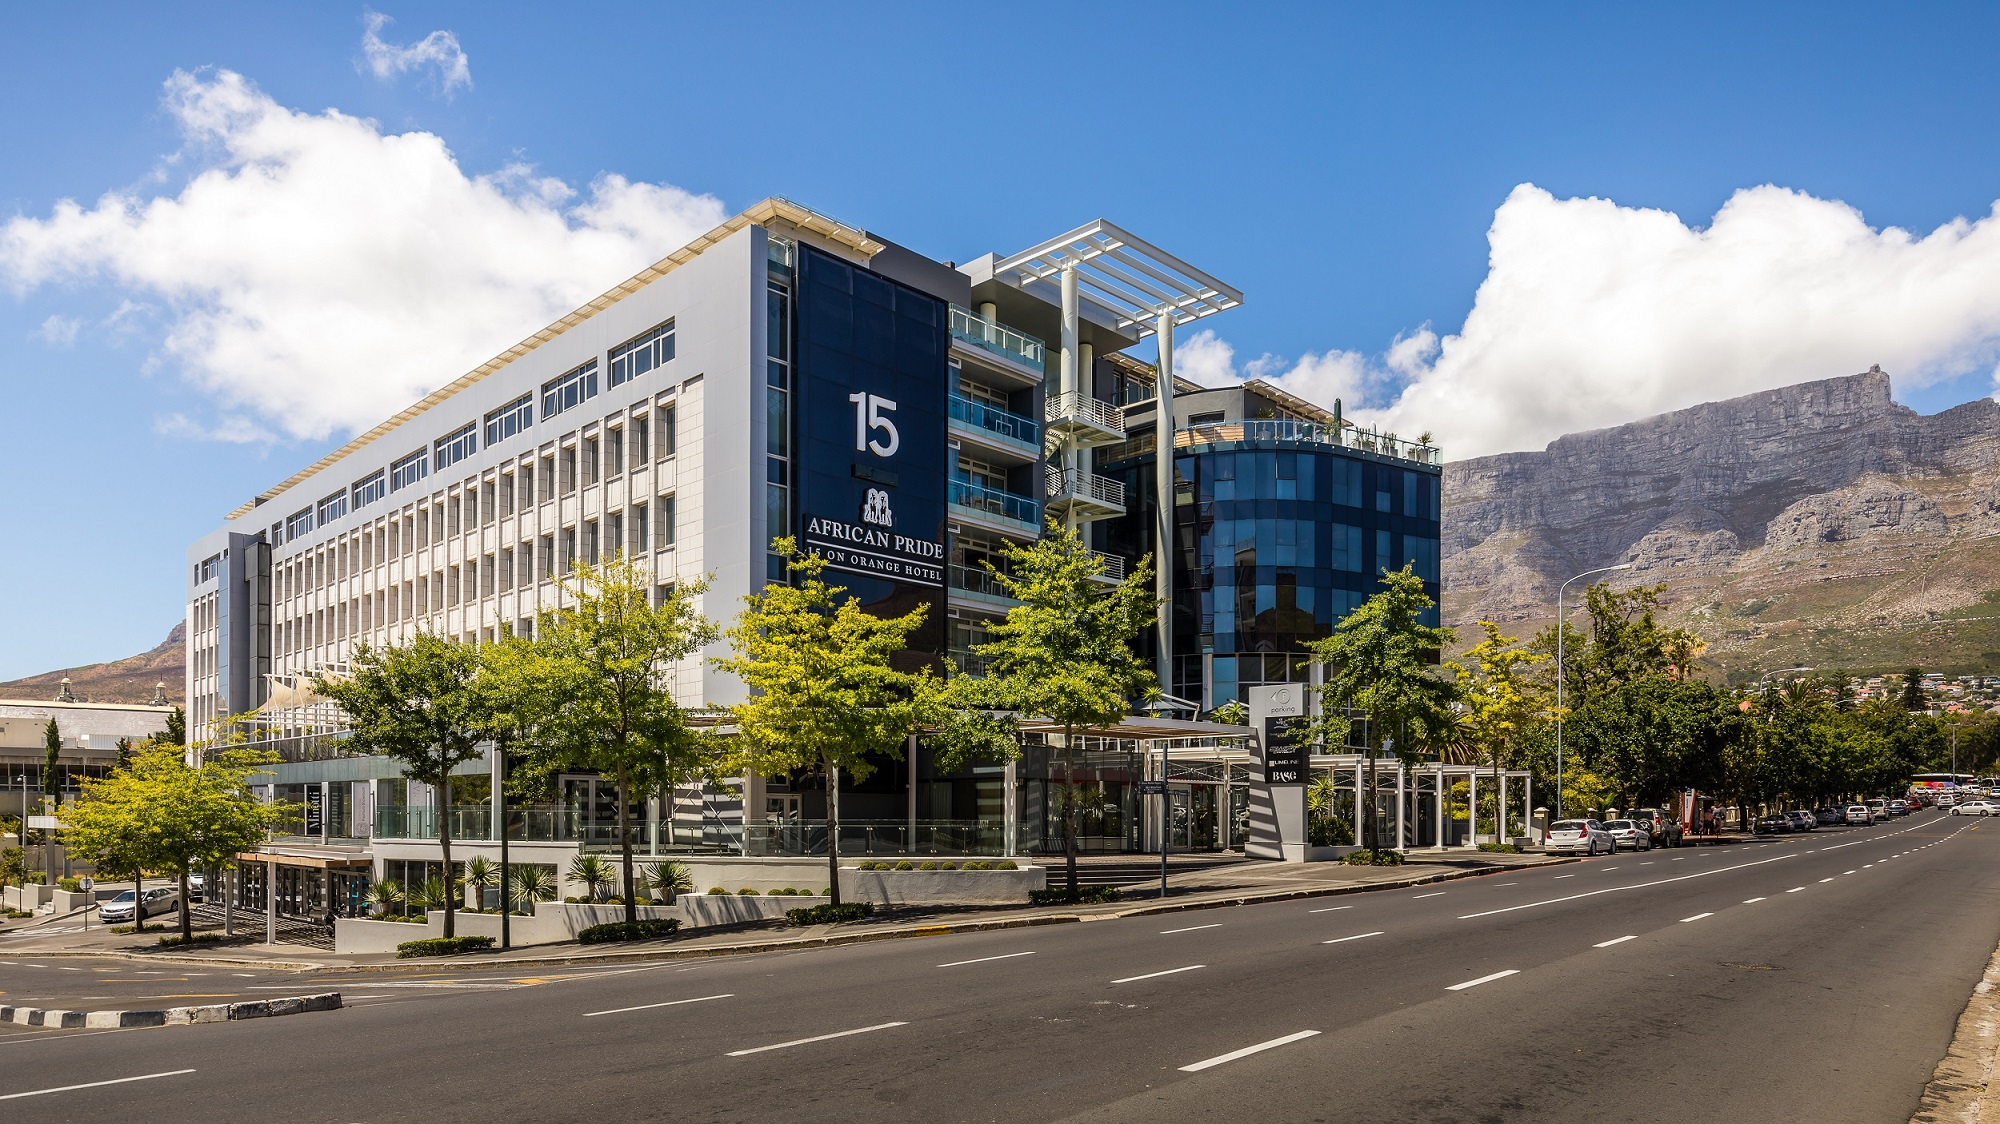 Autograph Collection Hotels debut in South Africa with rebranding of five African Pride hotels